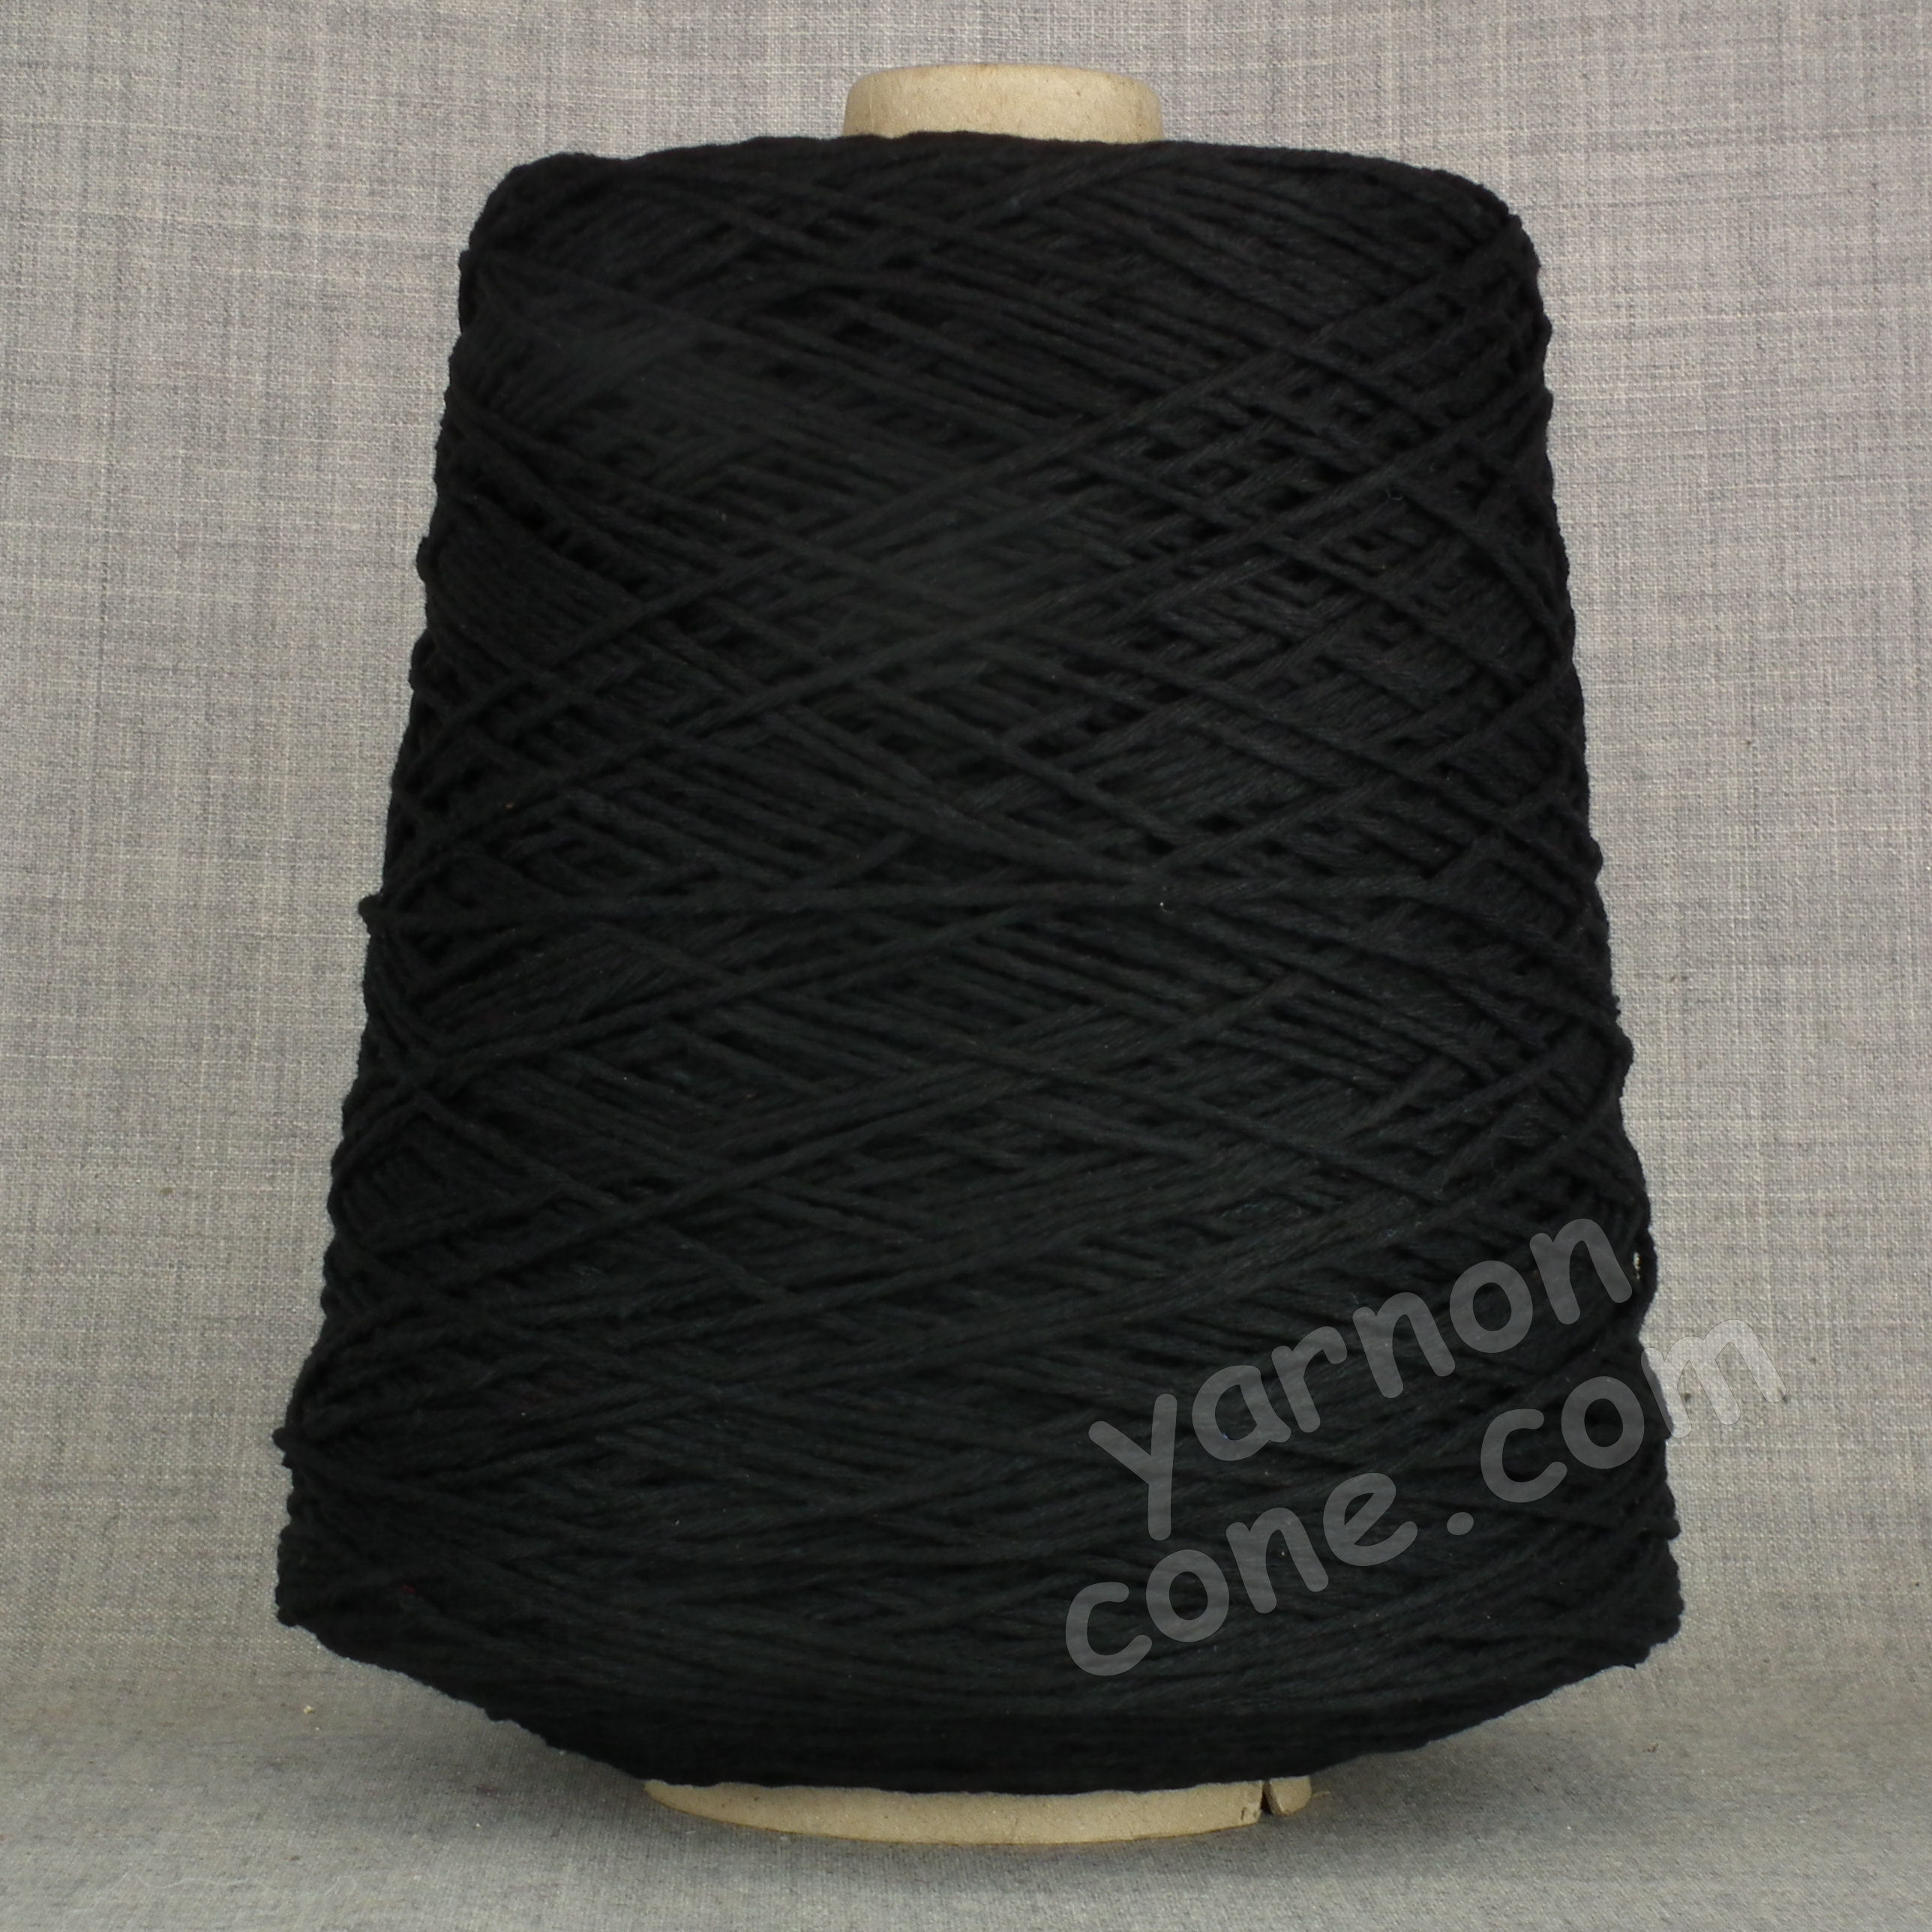 Double knitting DK soft pure cotton yarn on cone hand machine knitting weaving crochet black